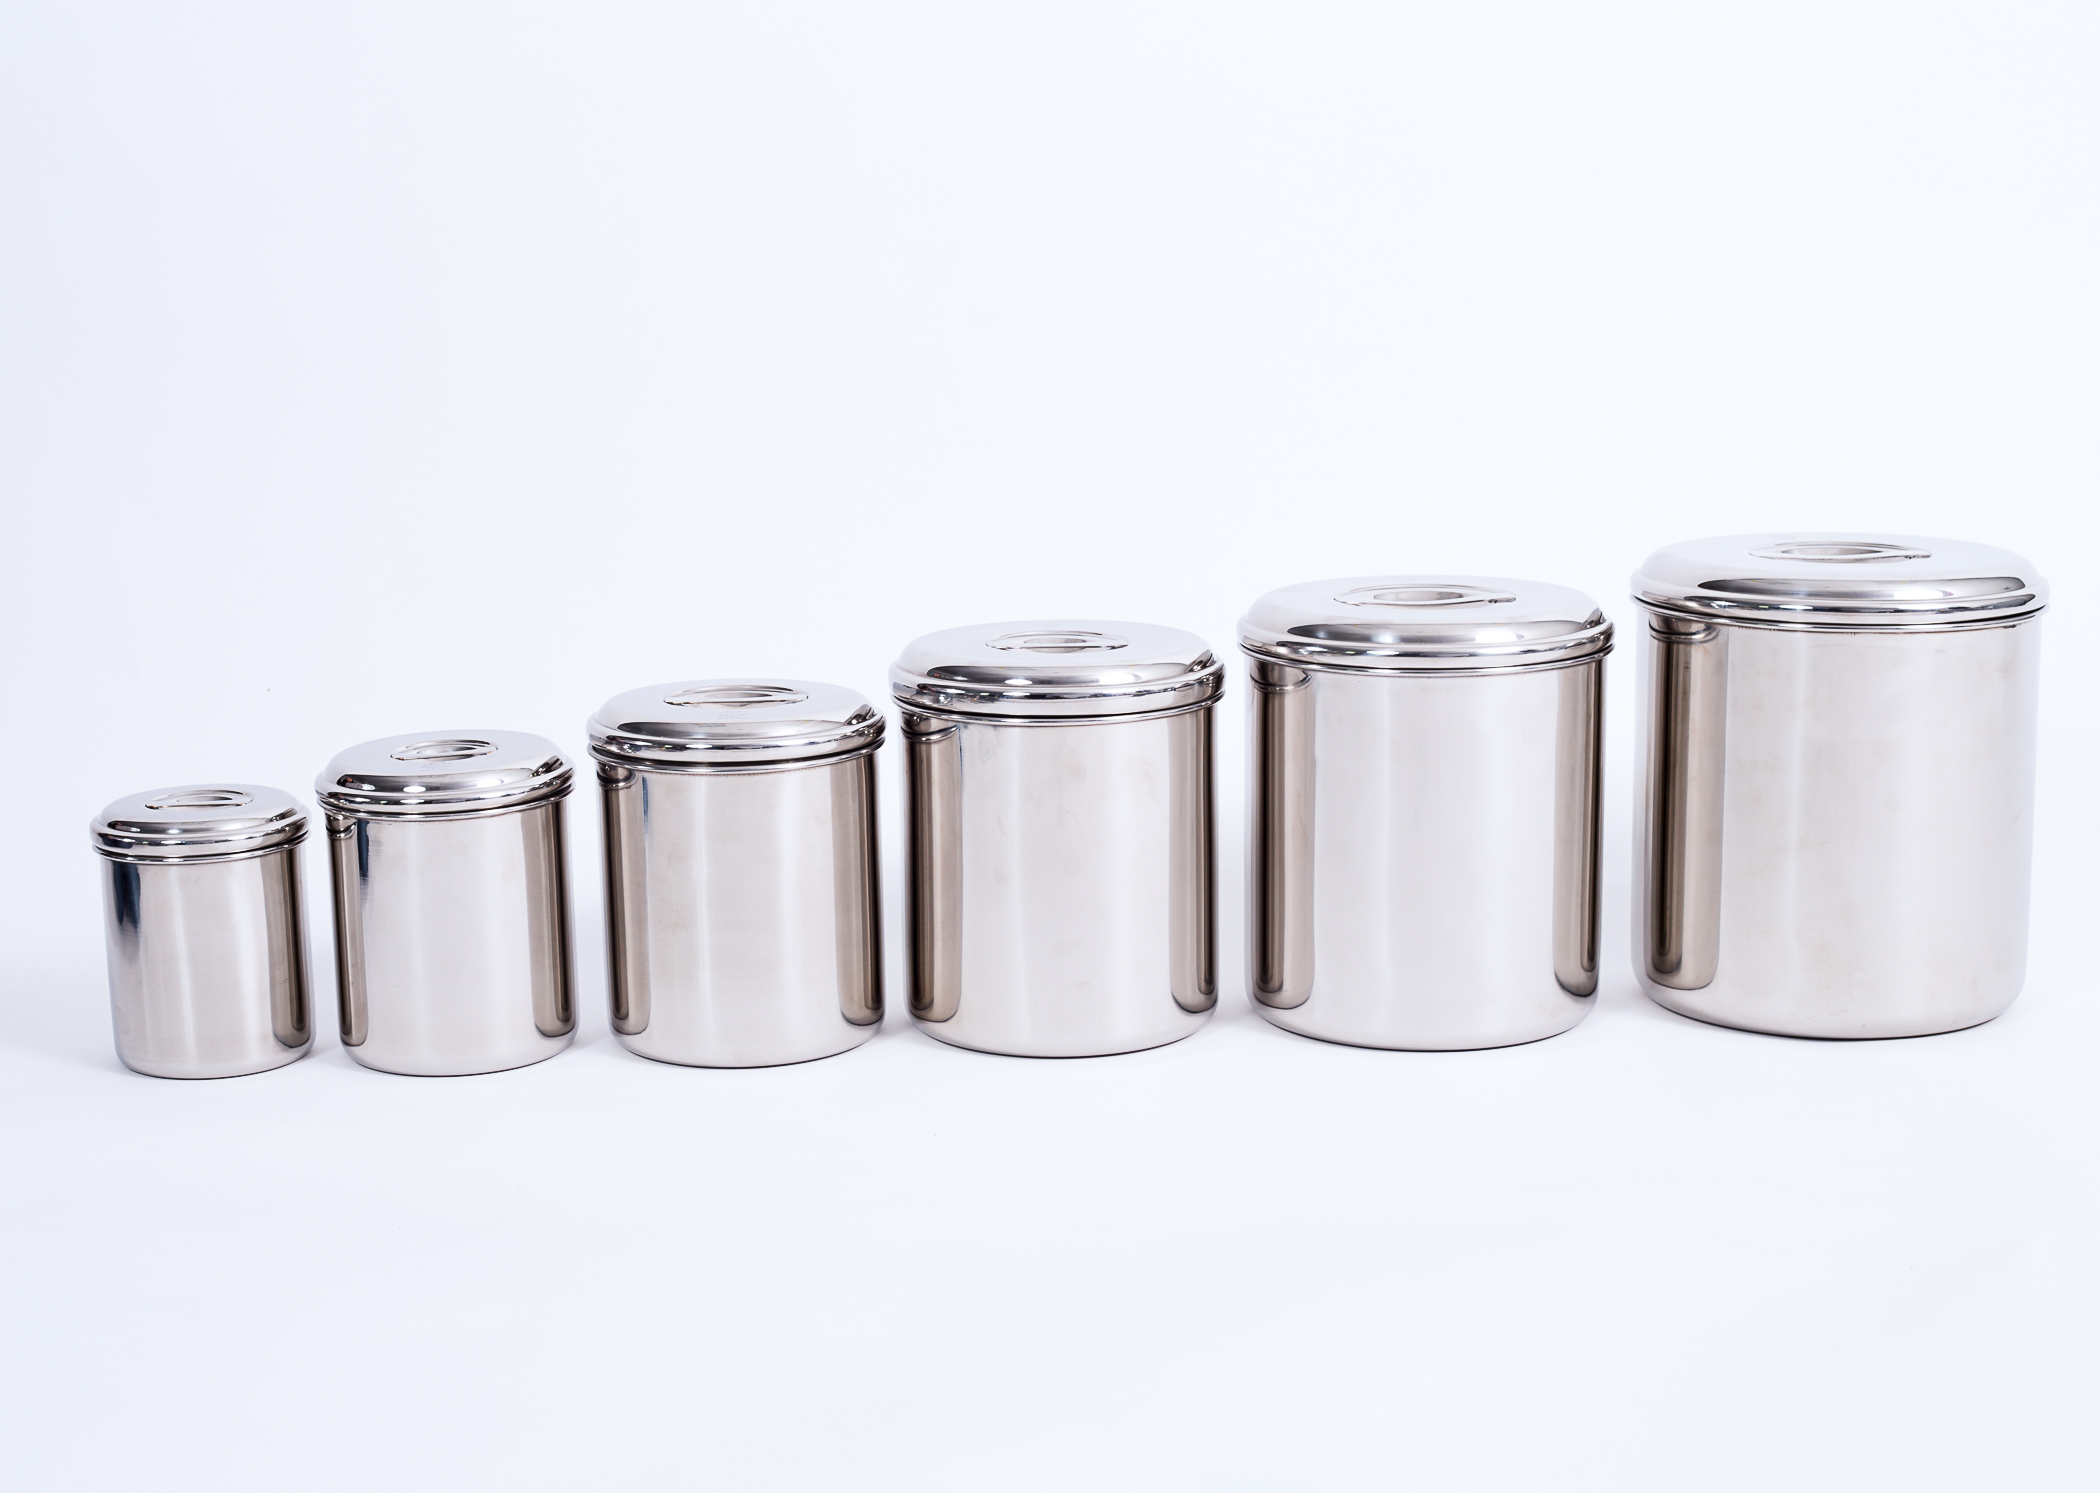 Onyx Stainless Steel Canister 4 9 Quart